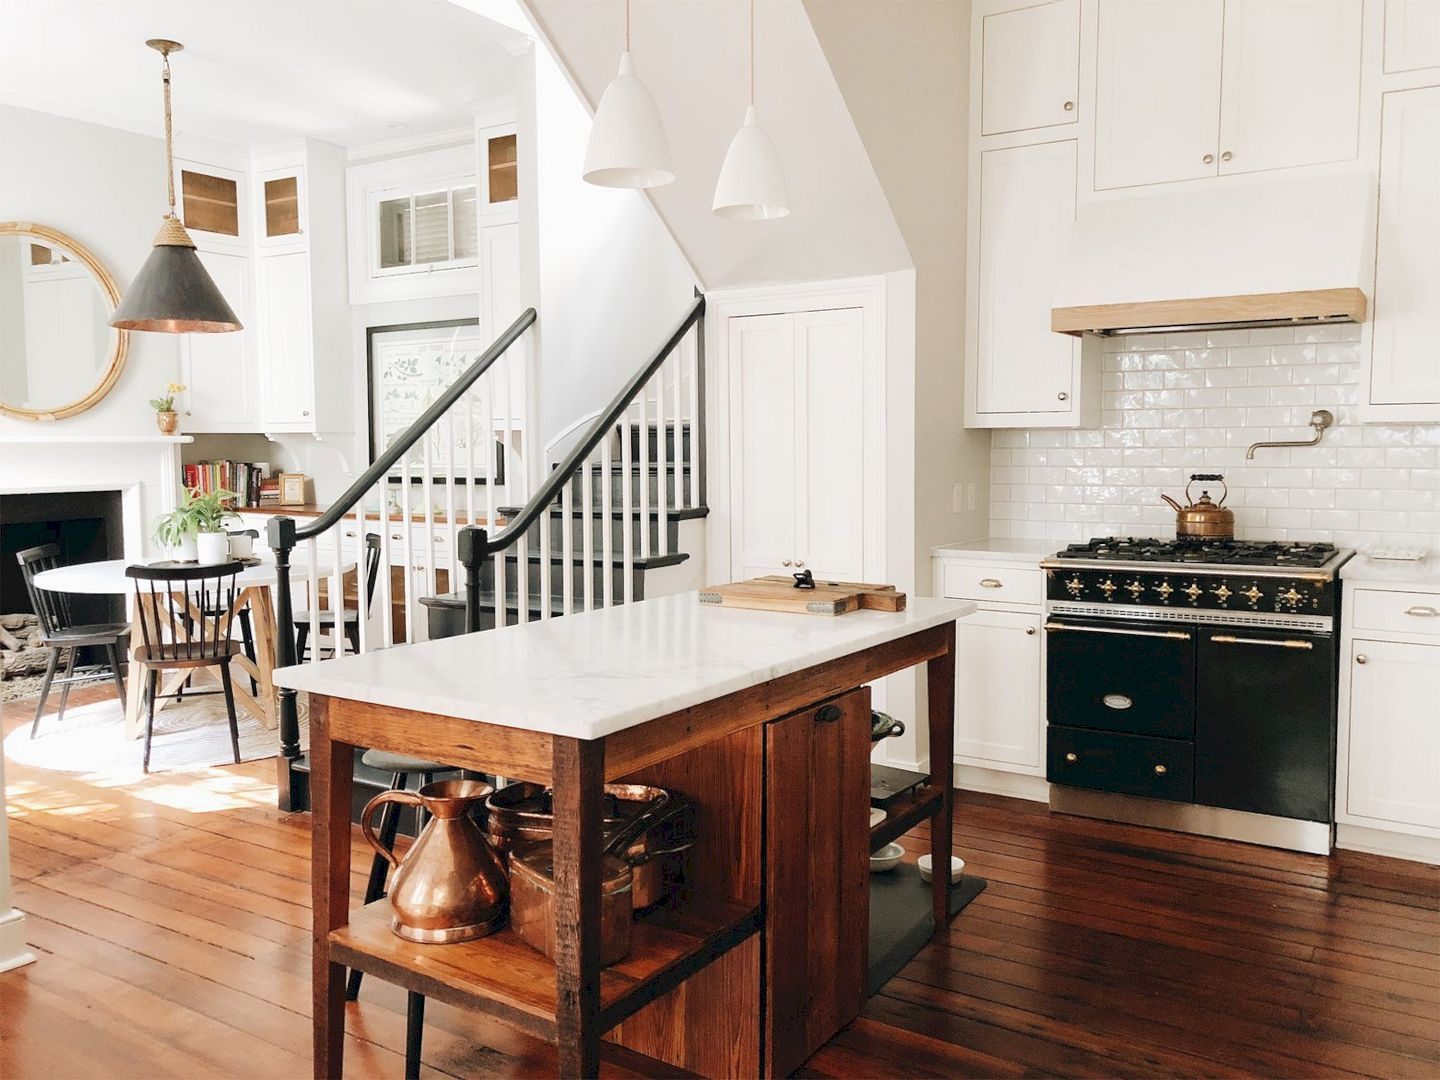 meeting street a kitchen renovation with clean and classic interior design with images on kitchen interior classic id=14508